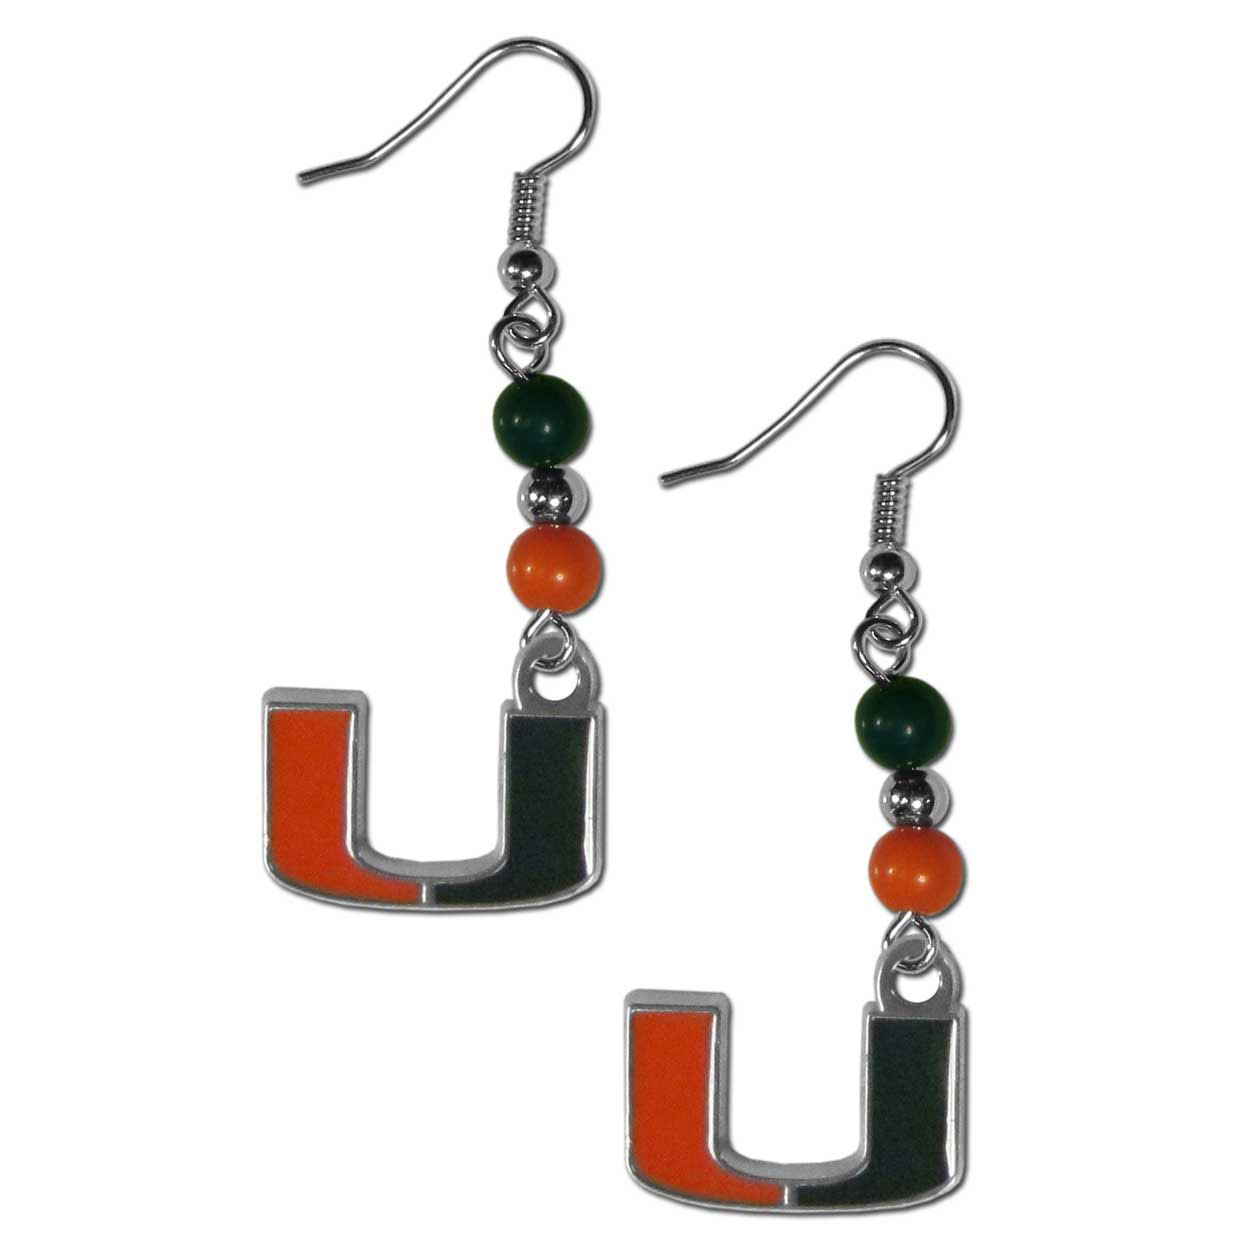 Miami Hurricanes Fan Bead Dangle Earrings - Love your team, show it off with our Miami Hurricanes bead dangle earrings! These super cute earrings hang approximately 2 inches and features 2 team colored beads and a high polish team charm. A must have for game day!